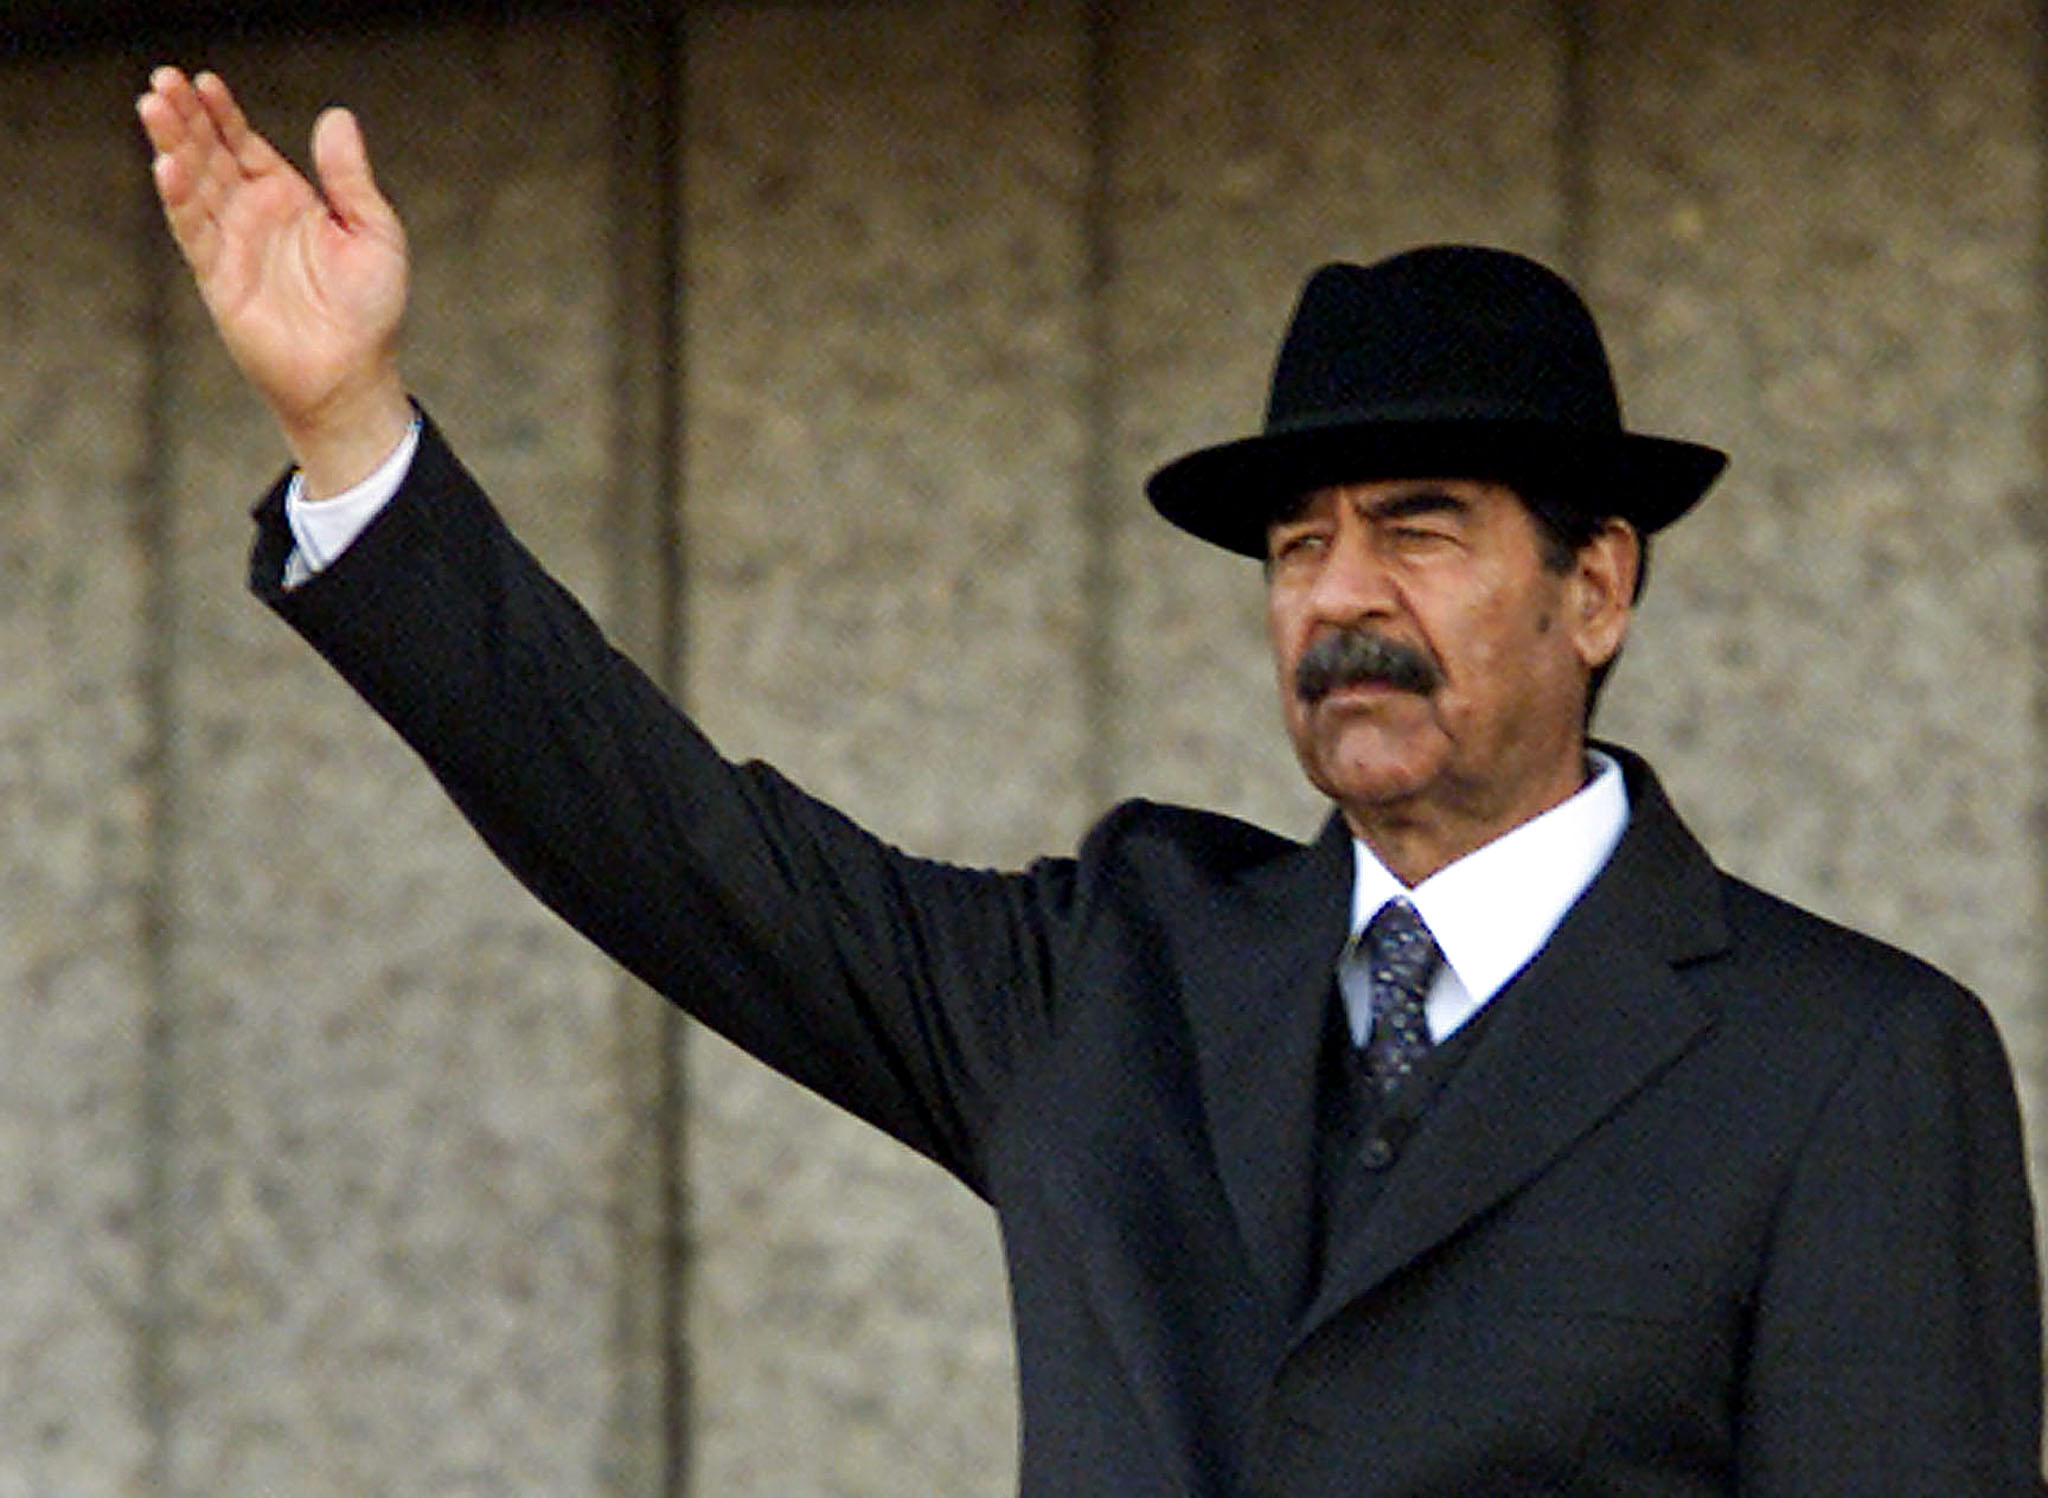 reuters - saddam - December 31, 2001 file photo of Iraqi President Saddam Hussein firing shots in air. Iraqi President Saddam Hussein apologised to the Kuwaiti people on Saturday dECEMBER 7, 2002 for his 1990-1991 occupation and urged them to struggle against foreign armies.